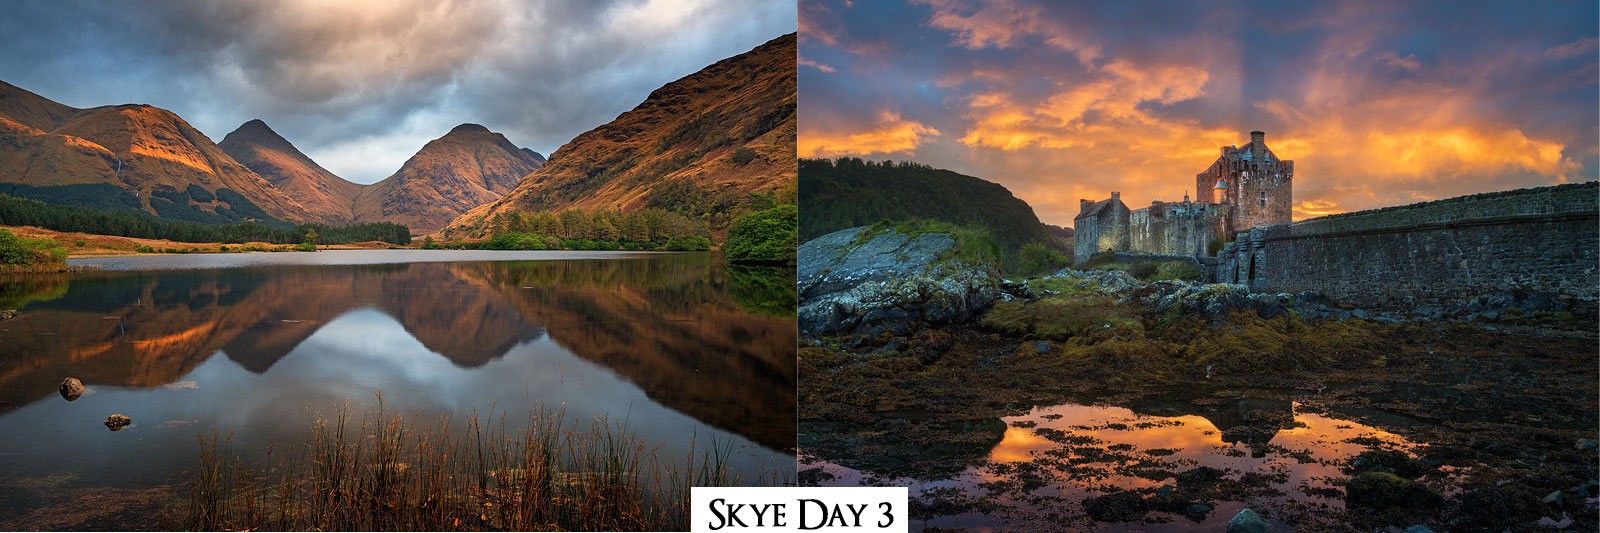 Photography Workshops on the Isle of Skye - Day 3